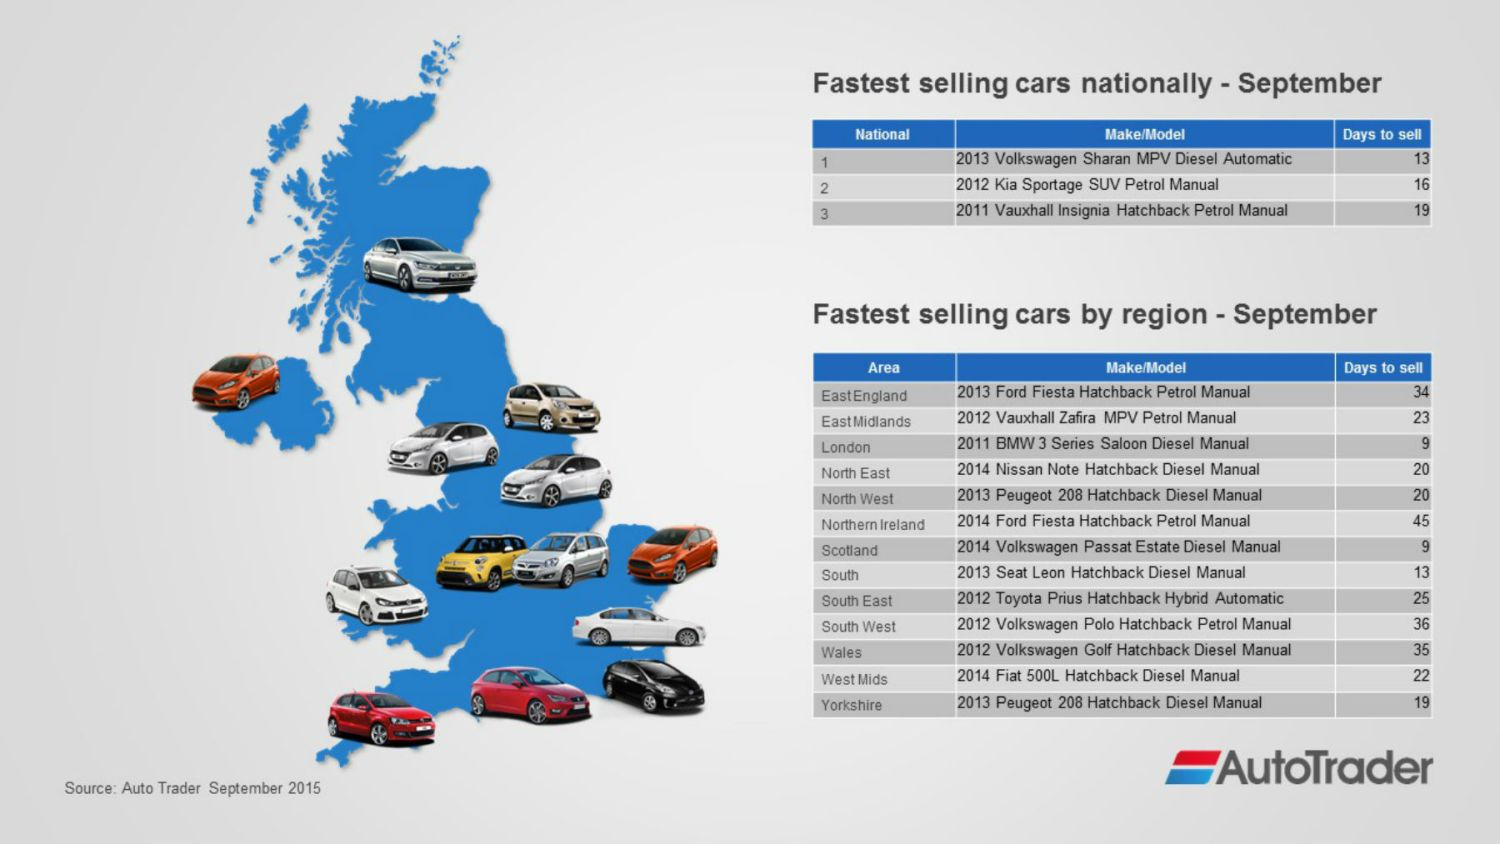 The fastest selling car on Auto Trader is a Volkswagen Sharan diesel